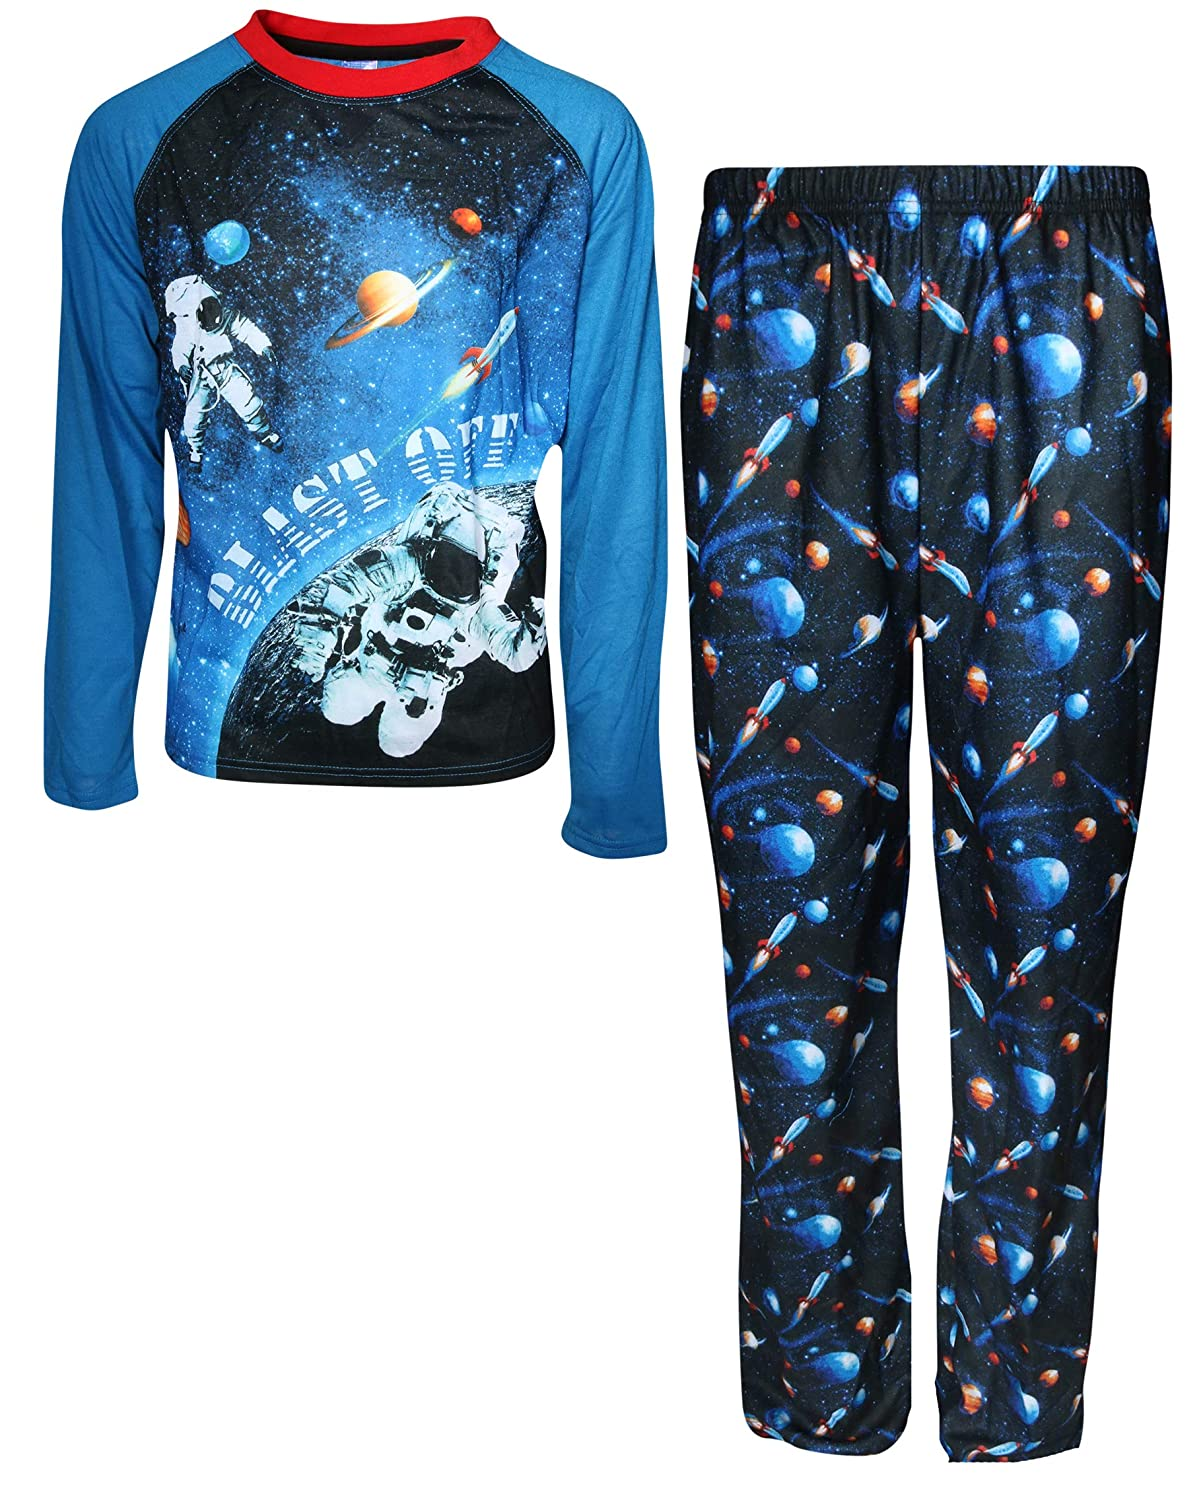 Only Boys Sleepwear Long Sleeve Top with Fleece Pajama Pants 2 Piece Set